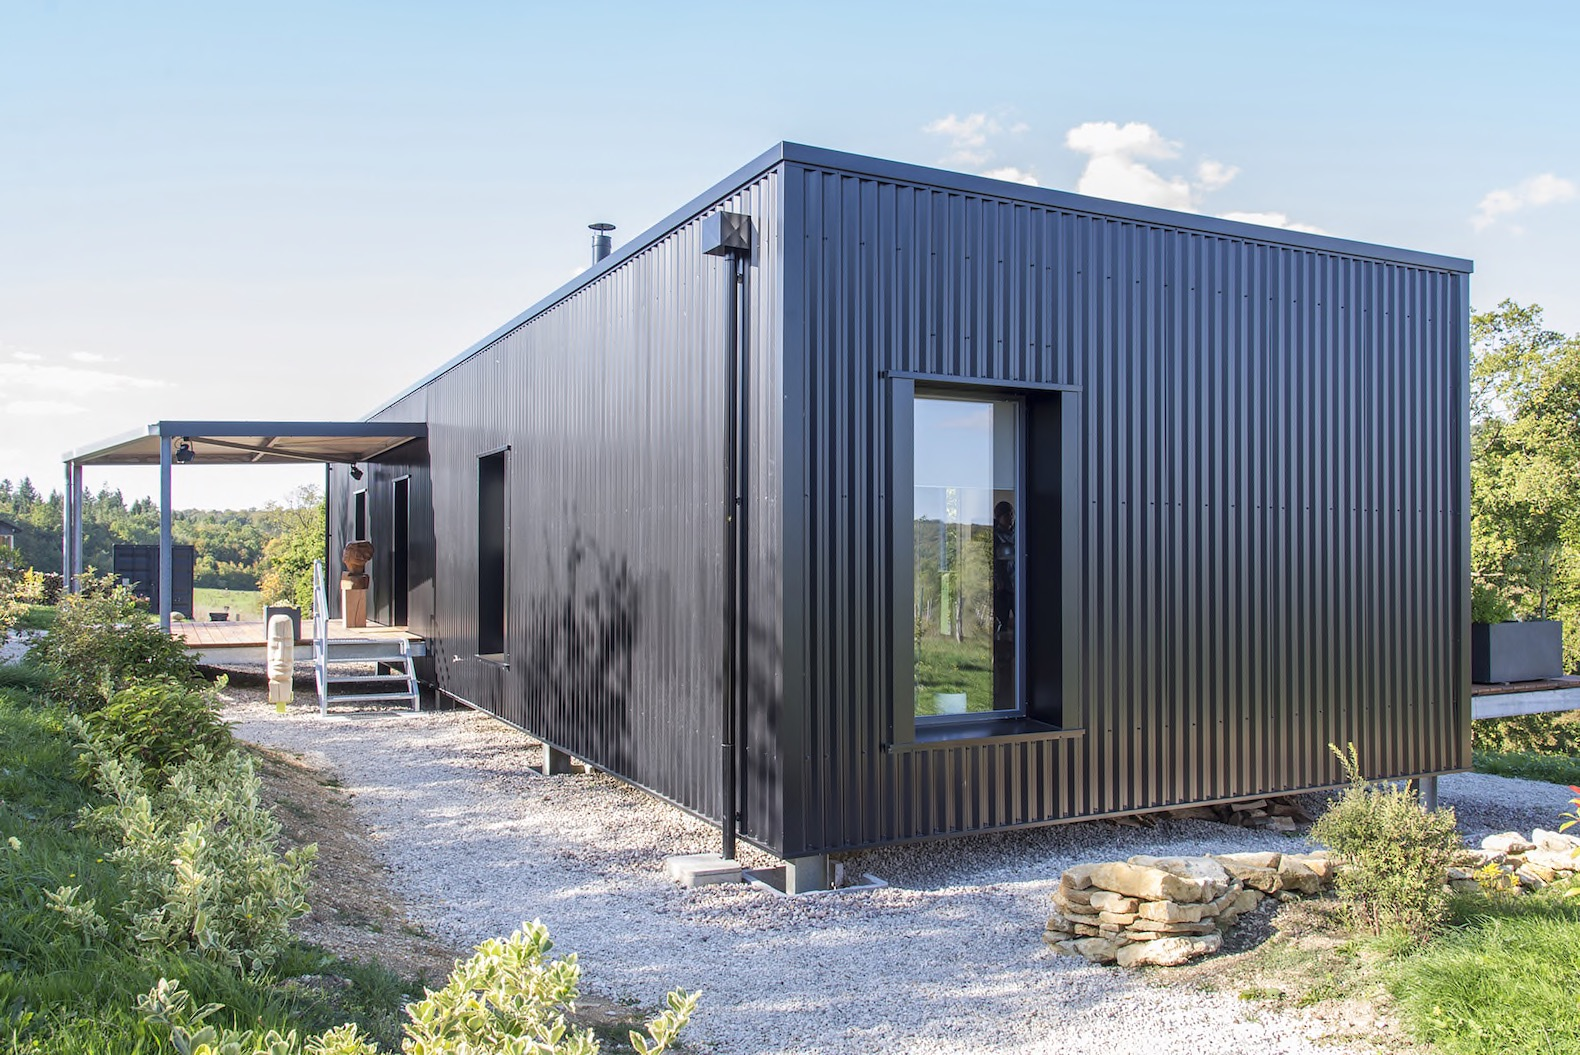 Home Shipping Containers light-filled shipping container home is an artistic triumph in the